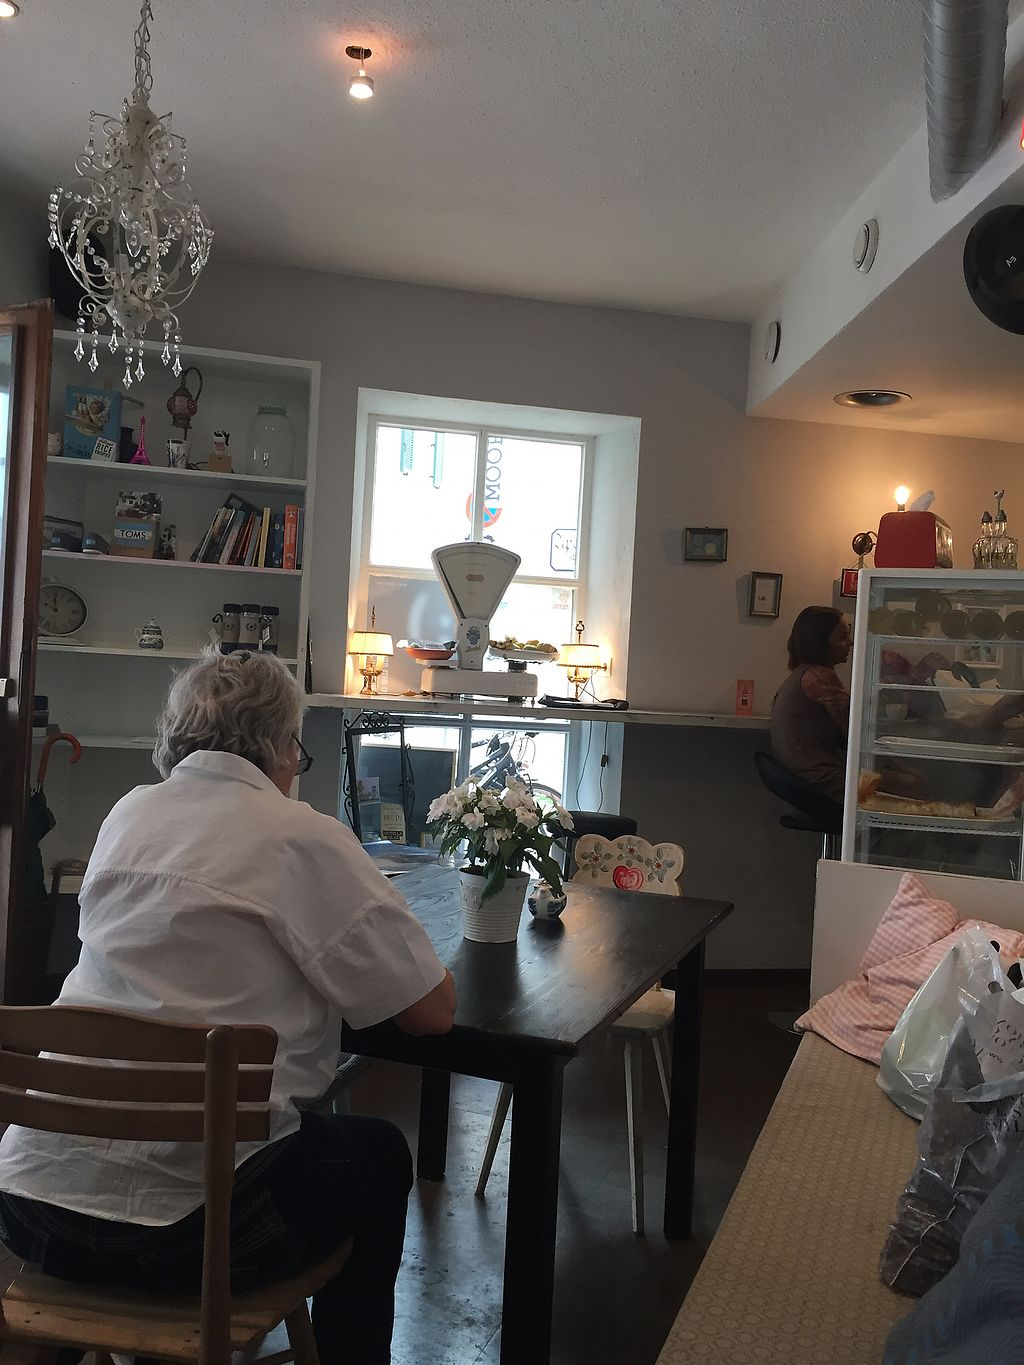 """Photo of Lieblingscafe  by <a href=""""/members/profile/macnothi"""">macnothi</a> <br/>inside  <br/> June 16, 2017  - <a href='/contact/abuse/image/93438/269740'>Report</a>"""